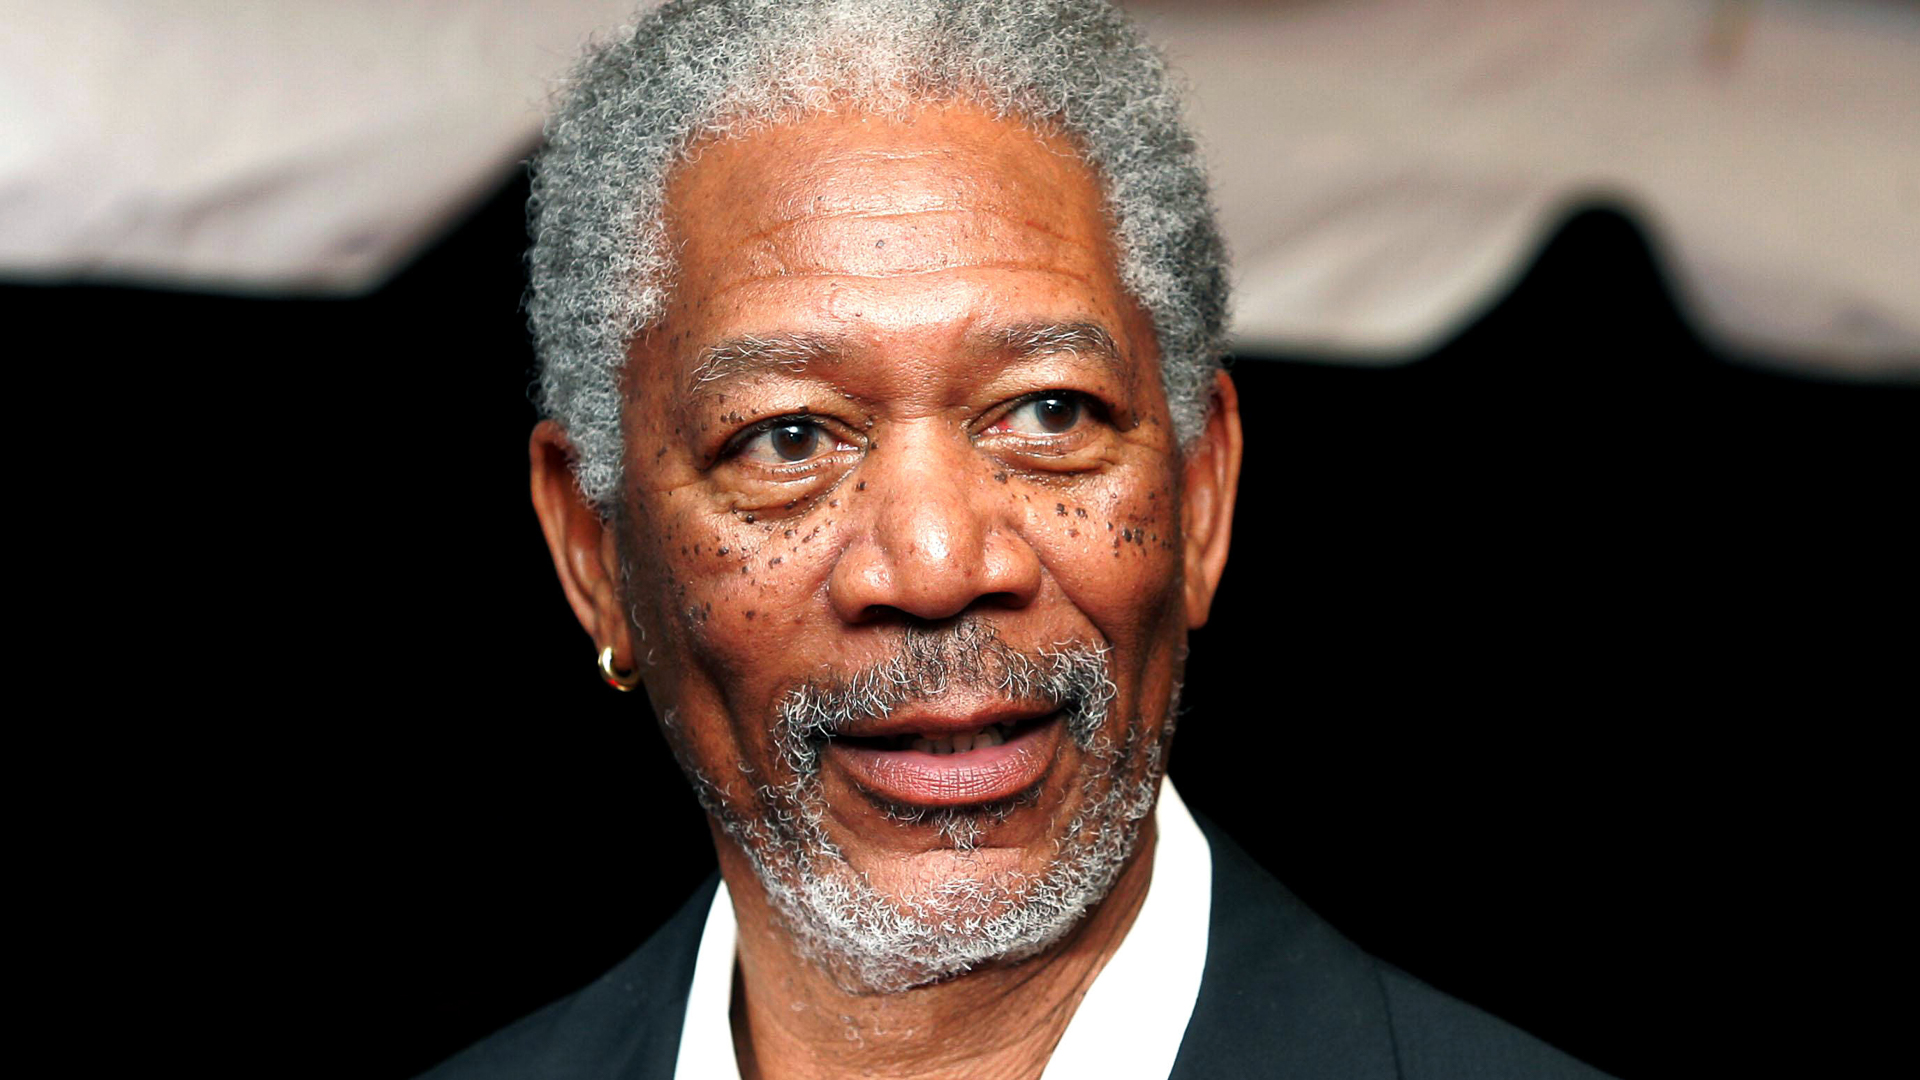 Morgan-Freeman net worth